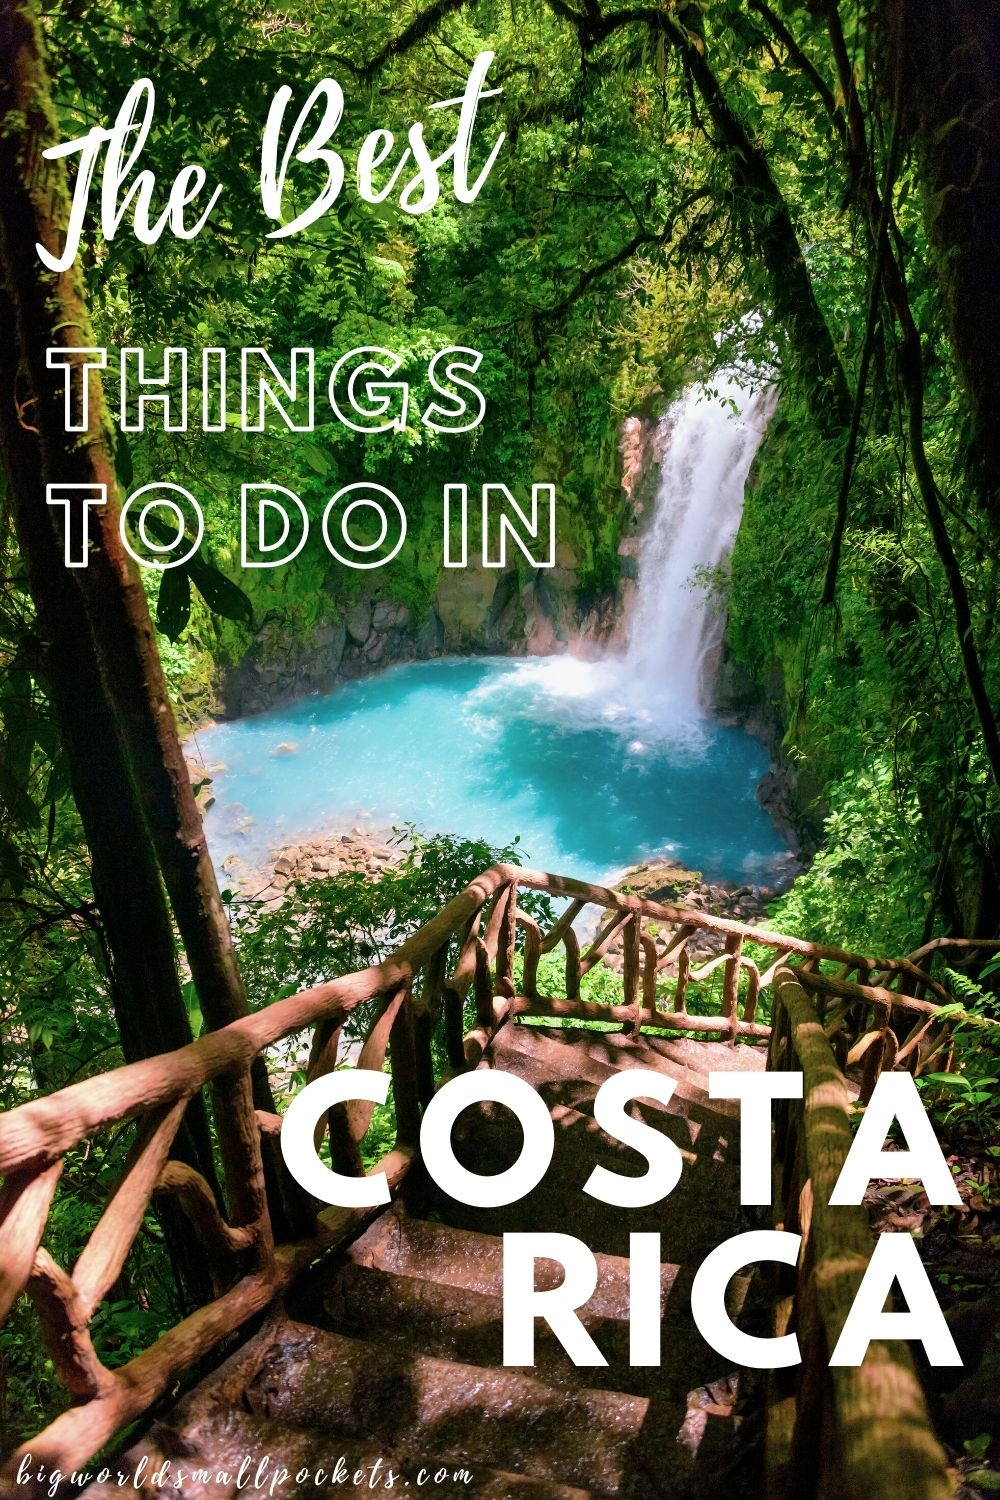 The Best Things To Do in Costa Rica